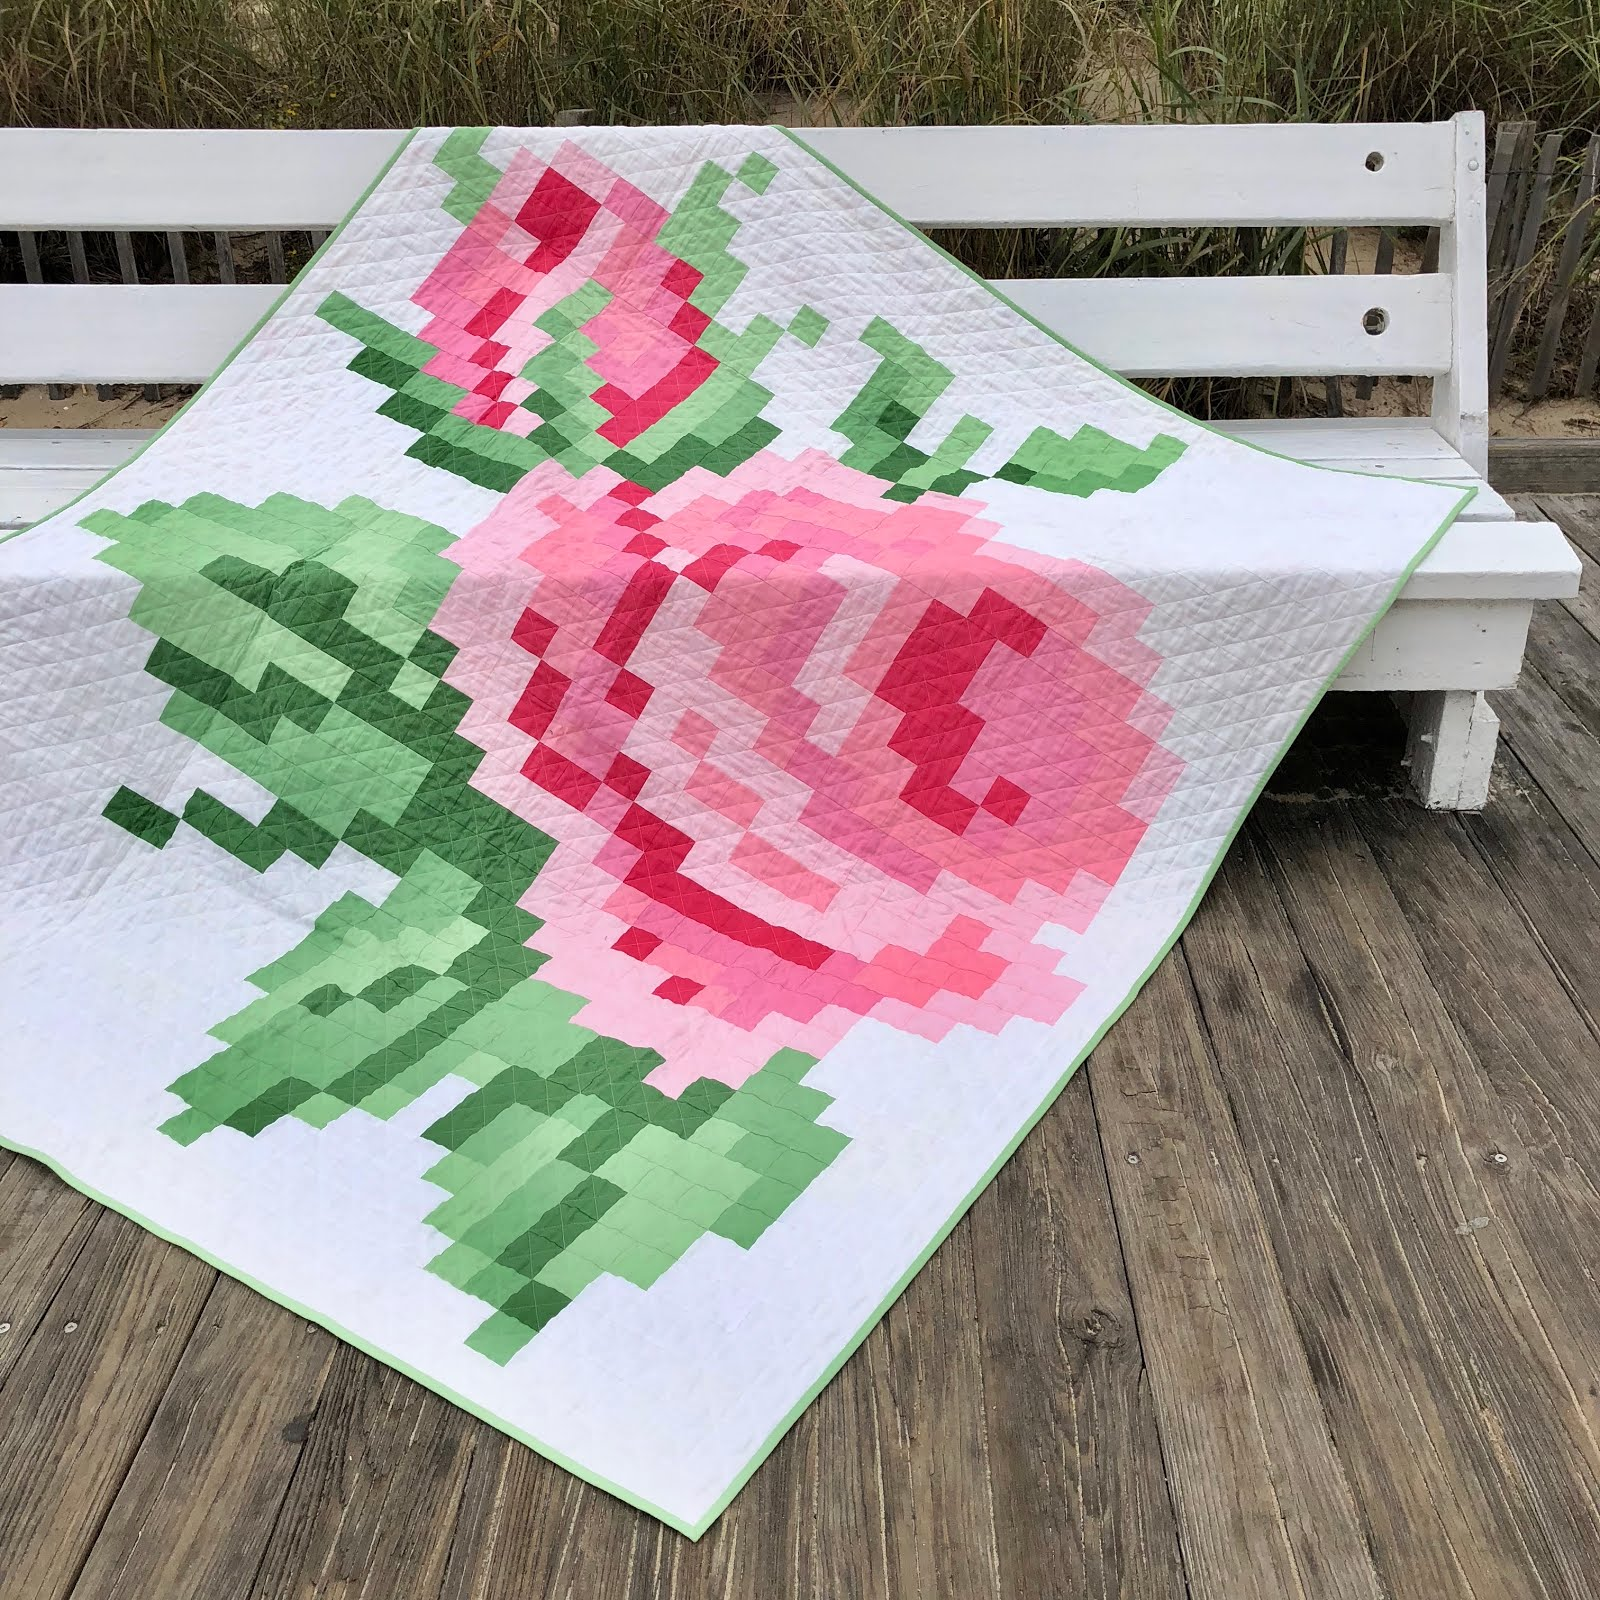 Pixelated Rose